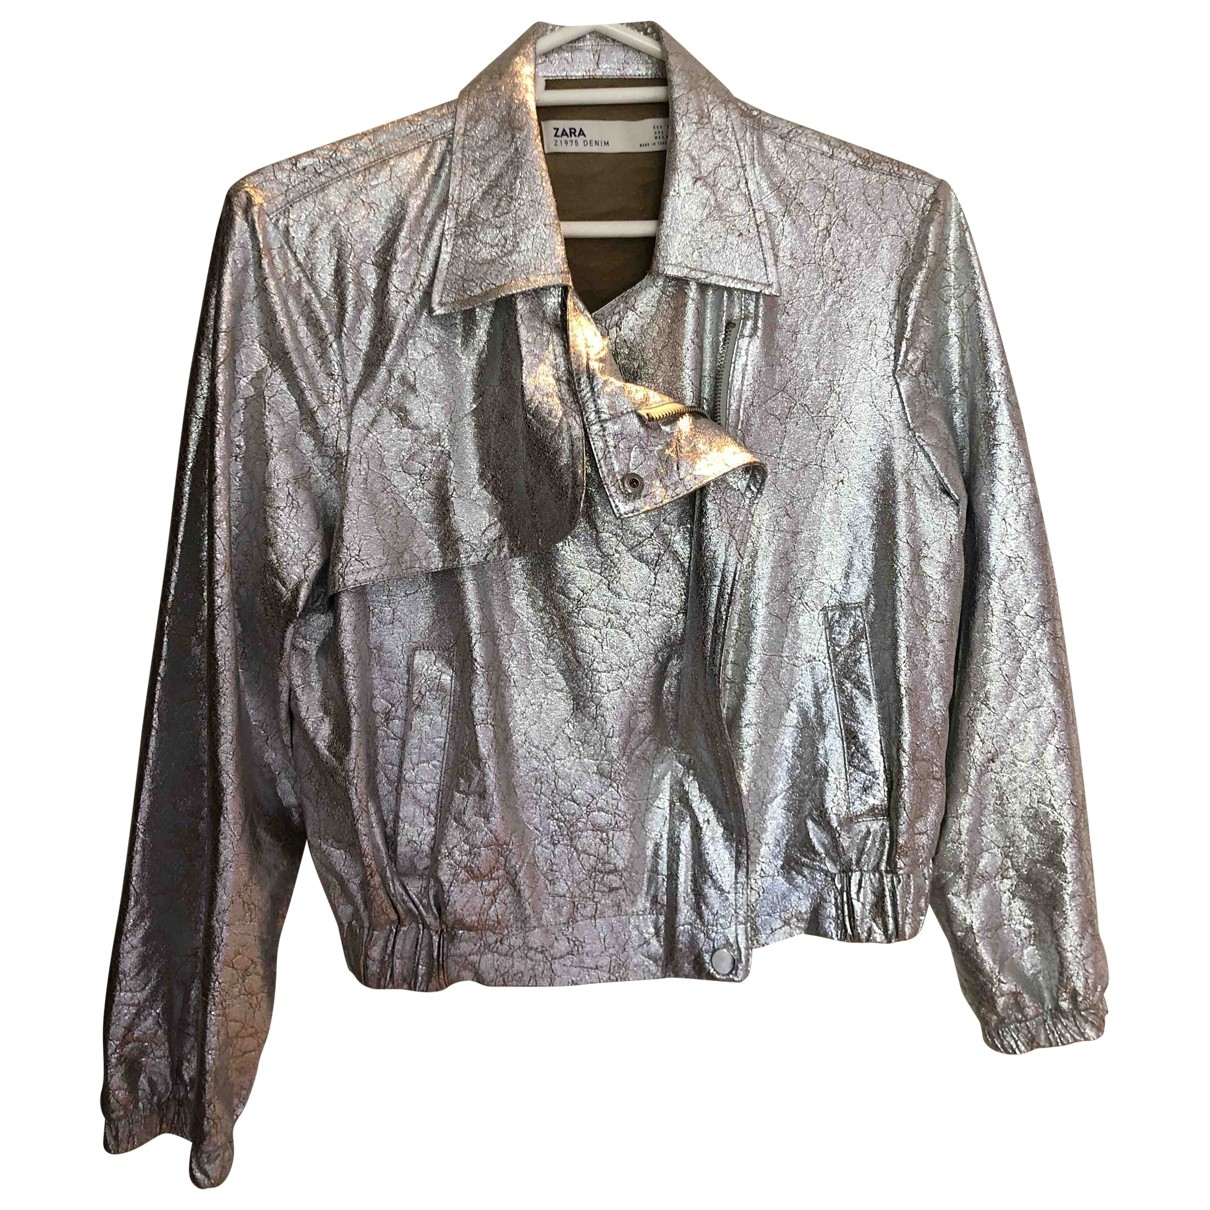 Zara \N Metallic jacket for Women S International